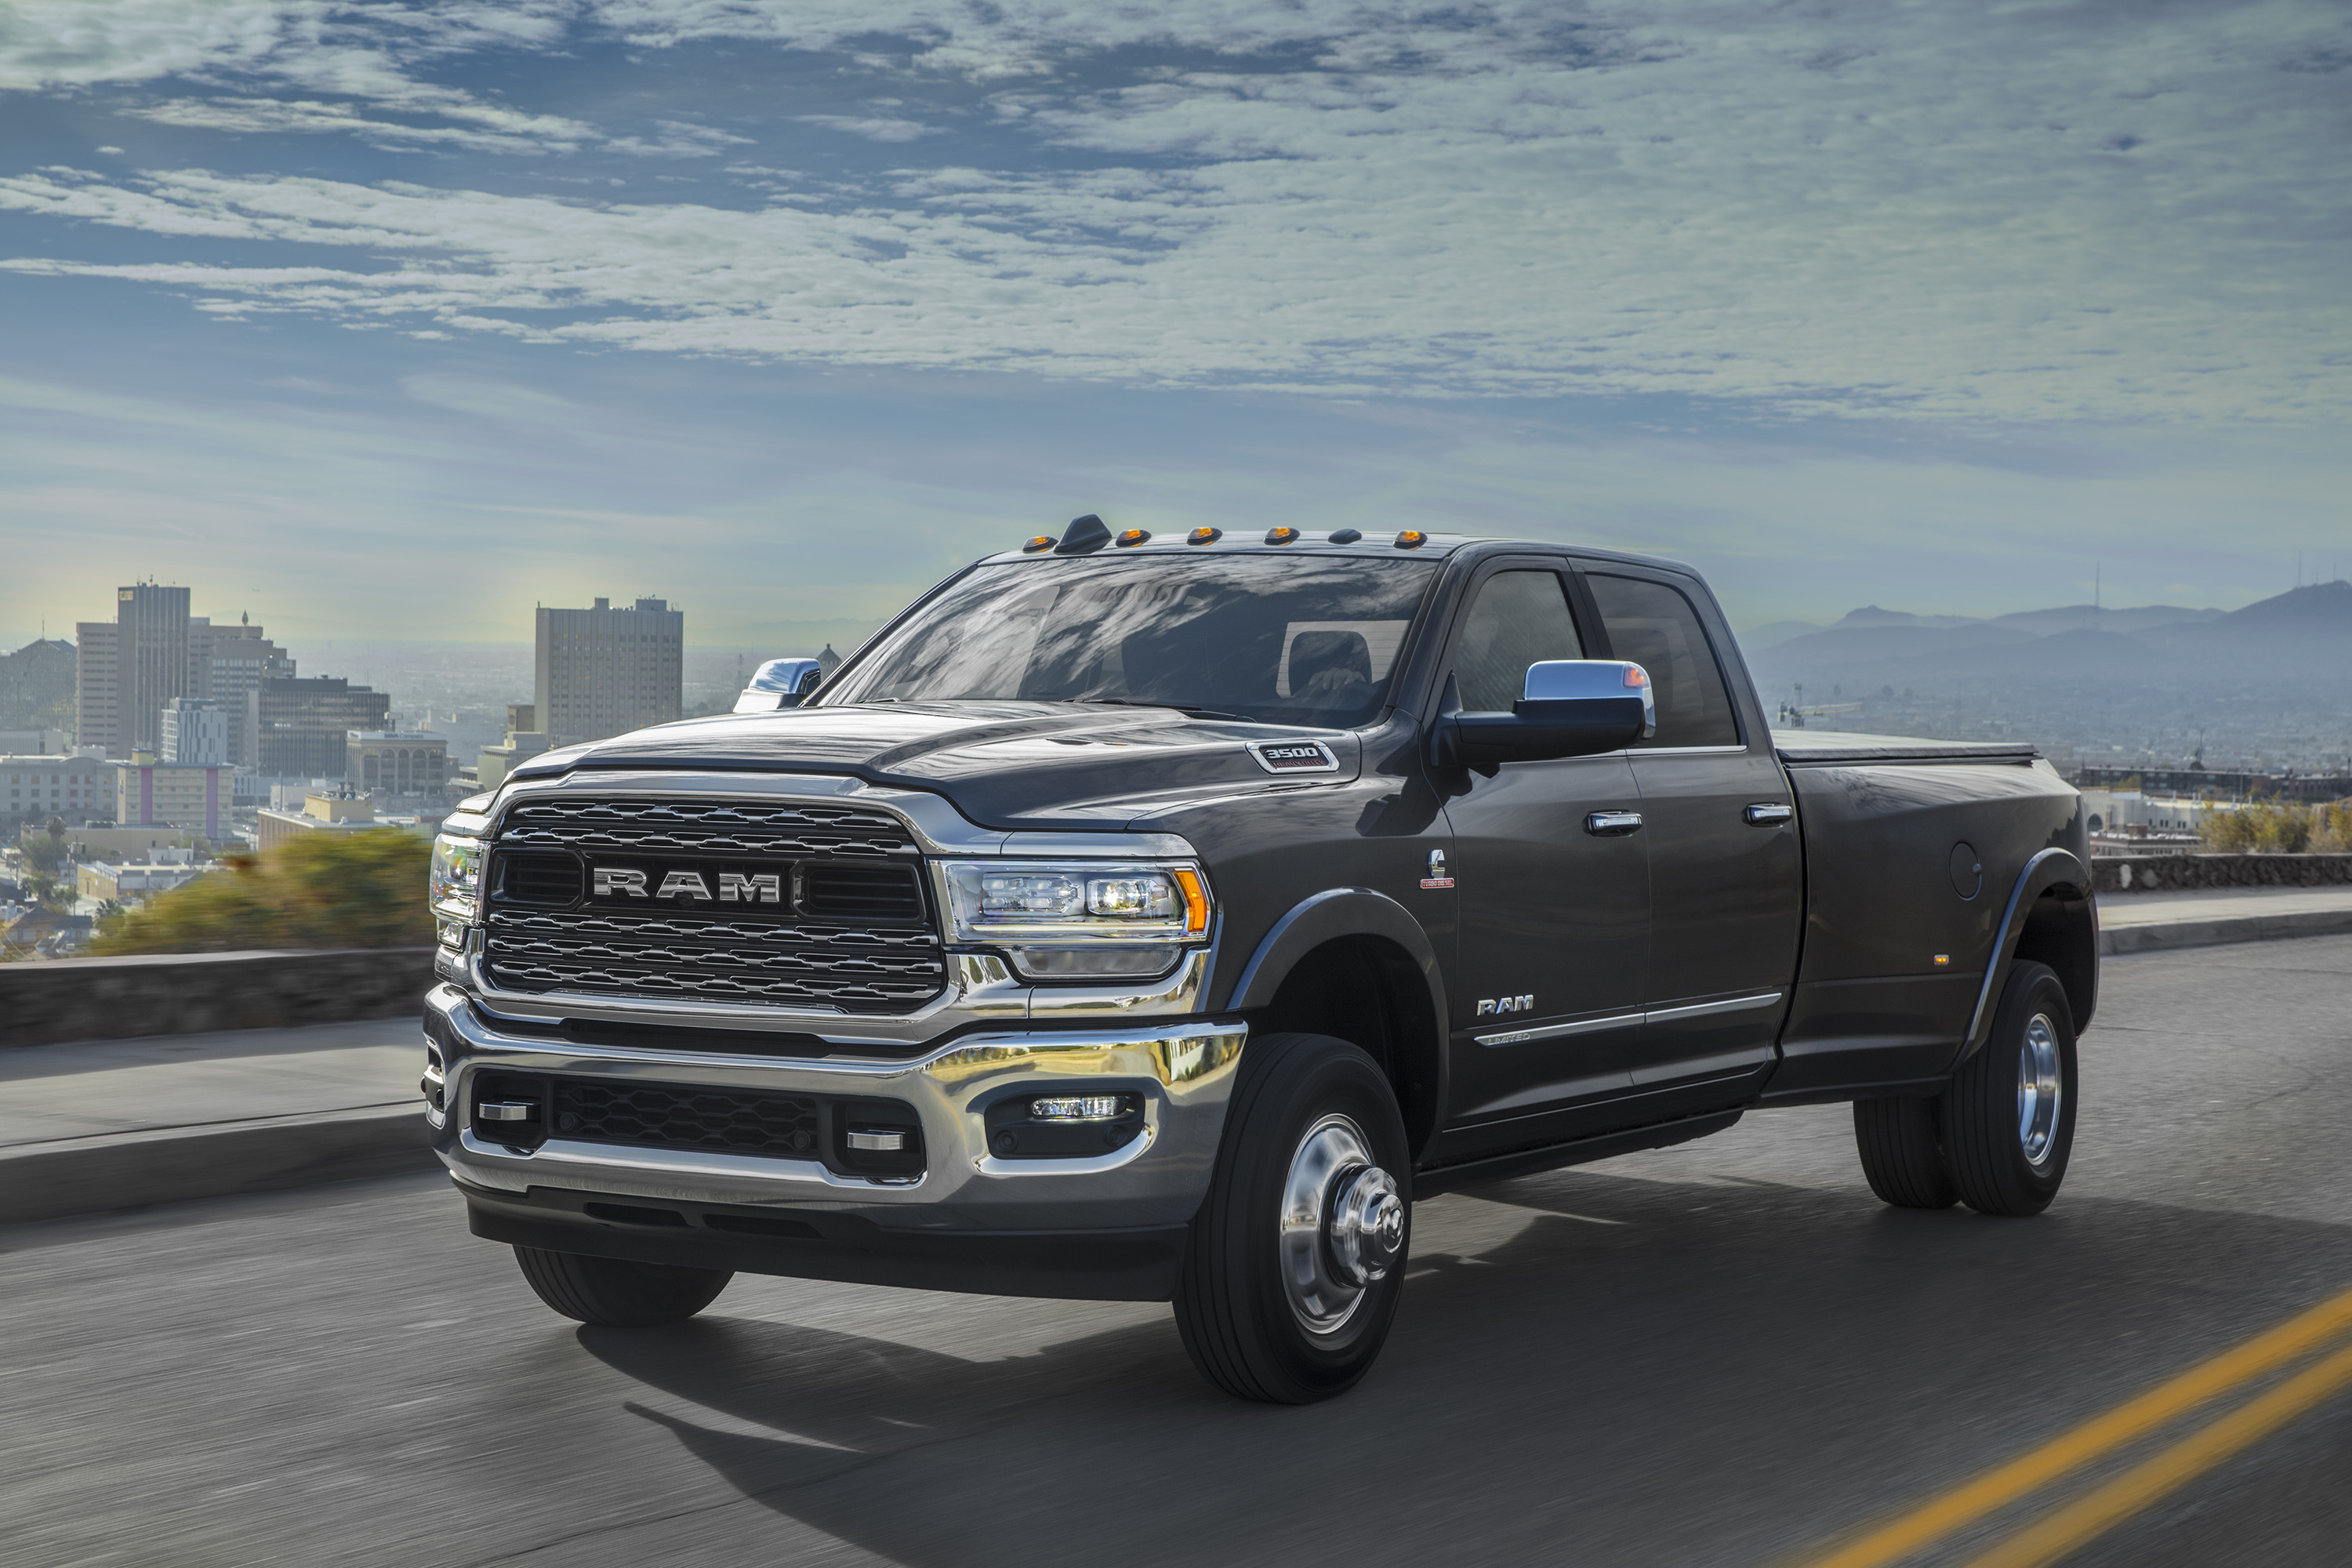 2019 Ram 3500 Heavy Duty Limited Crew Cab Dually Front Three-Quarter Wallpapers (13)